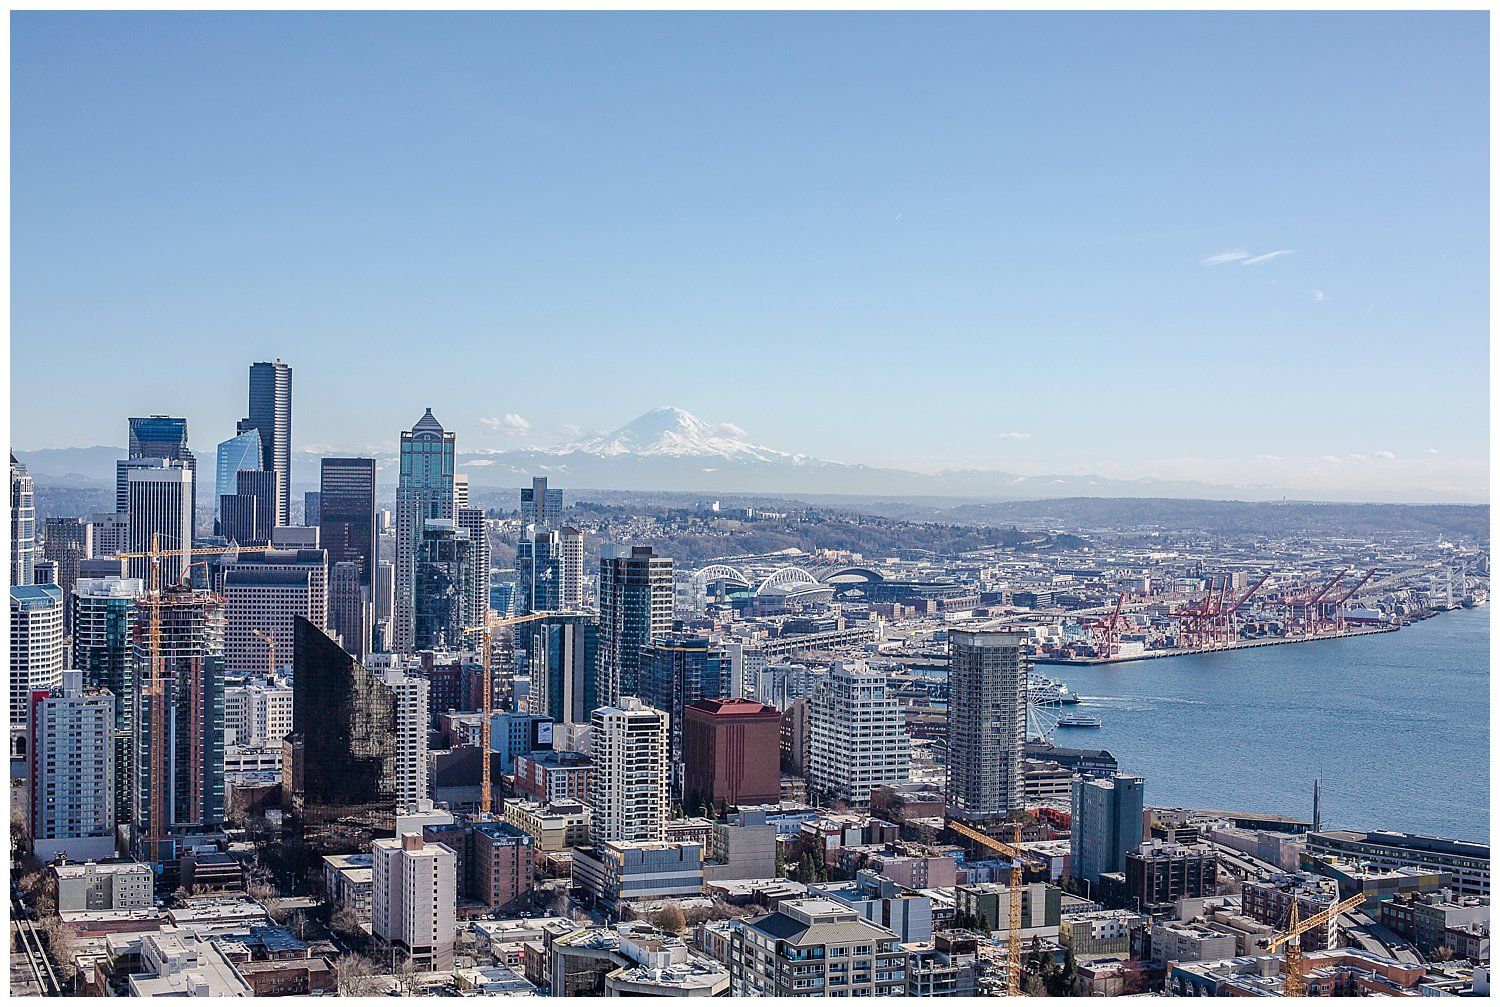 View from the Space Needle... breathtaking